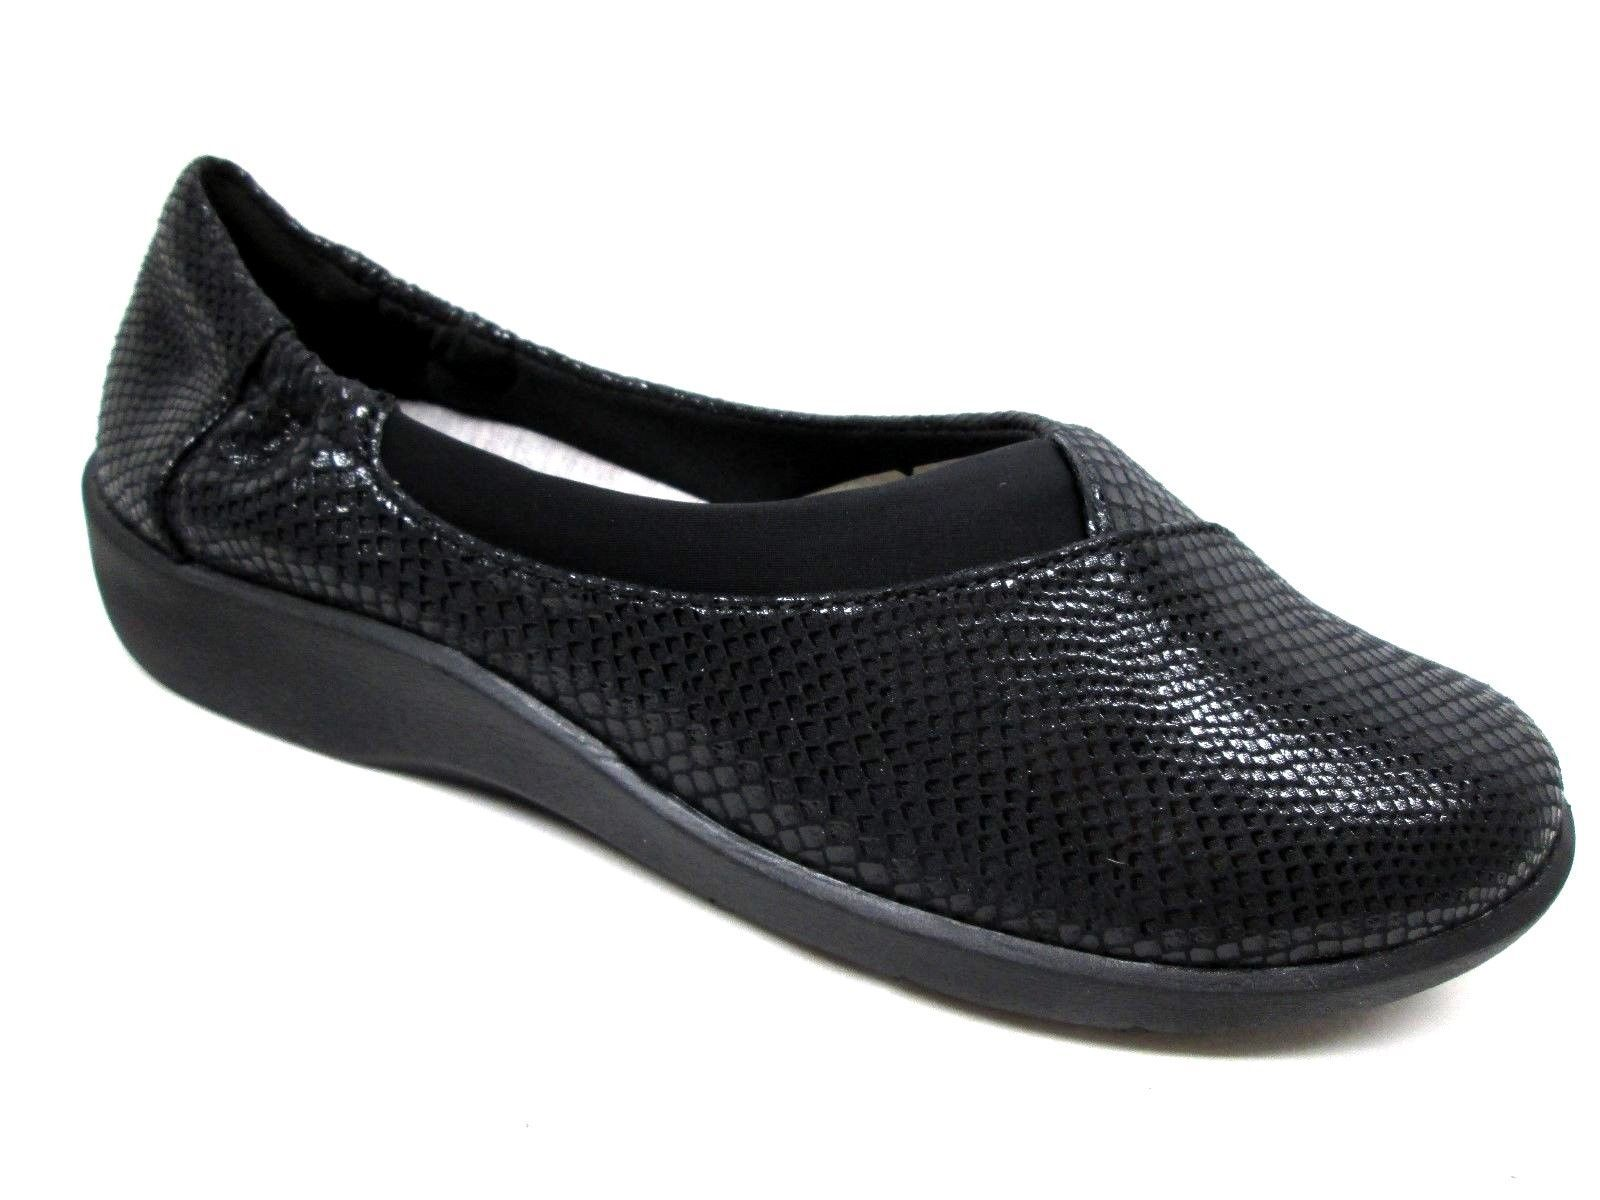 Cloudsteppers By Clarks Clarks Clarks 26474 Sillian Jetay Slip On Schuhes Damenschuhe ... 37bf1a